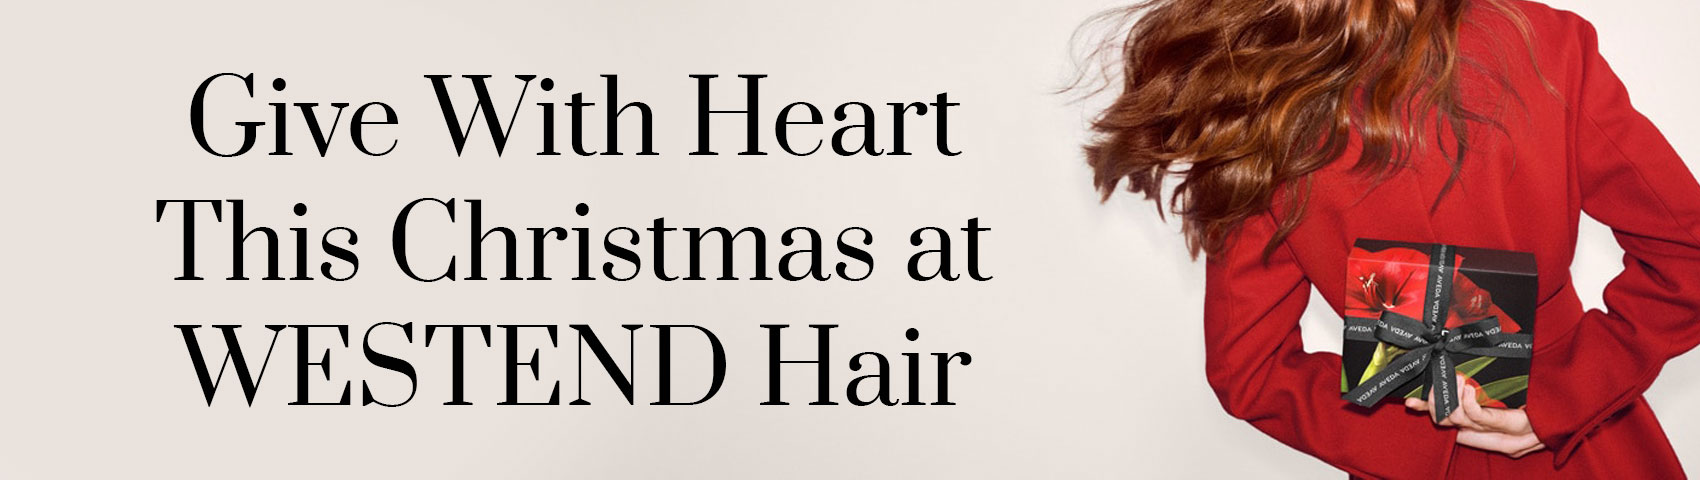 Give With Heart This Christmas at WESTEND Hair banner